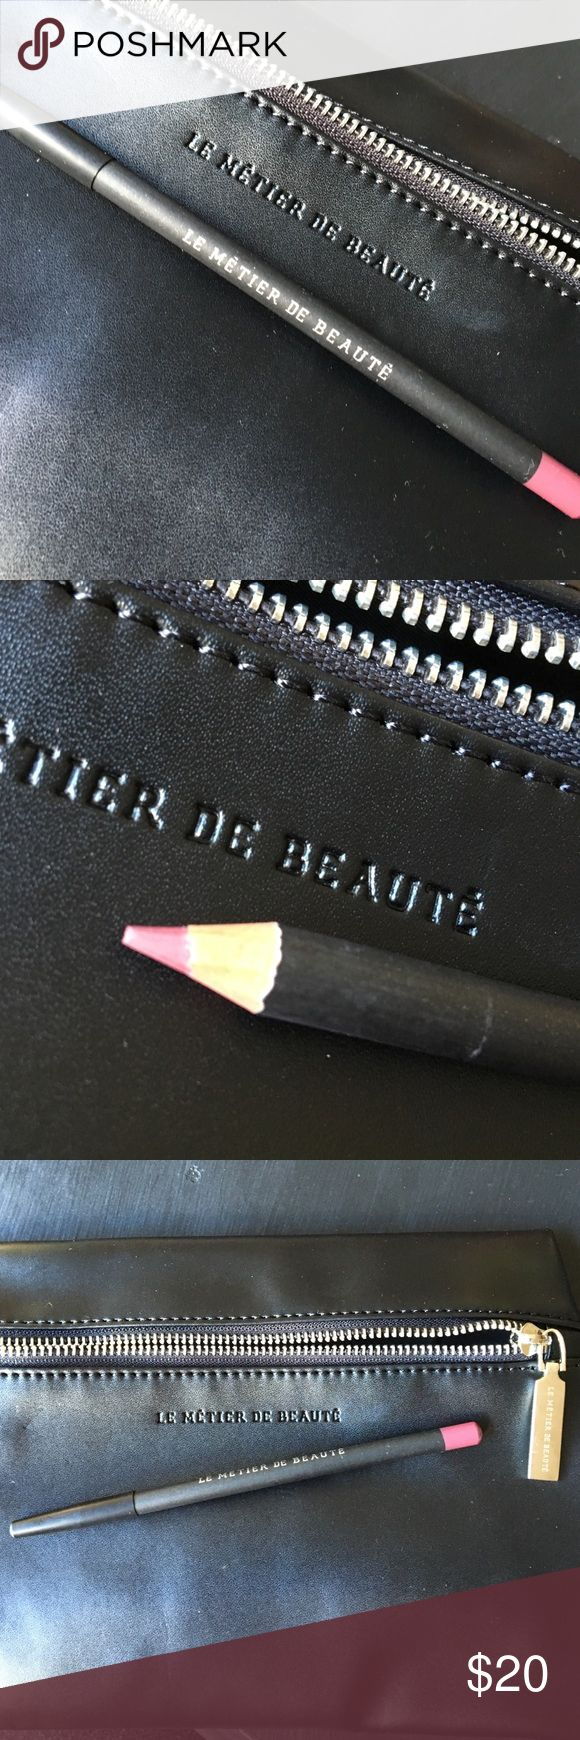 Le Metier De Beaute lip pencil in Reign Brand new. This color is also new for fall, raspberry plum. A sultry mauve. Gorgeous, rich, and striking. Retails at Neiman Marcus for $36. Le Metier De Beaute Makeup Lip Liner